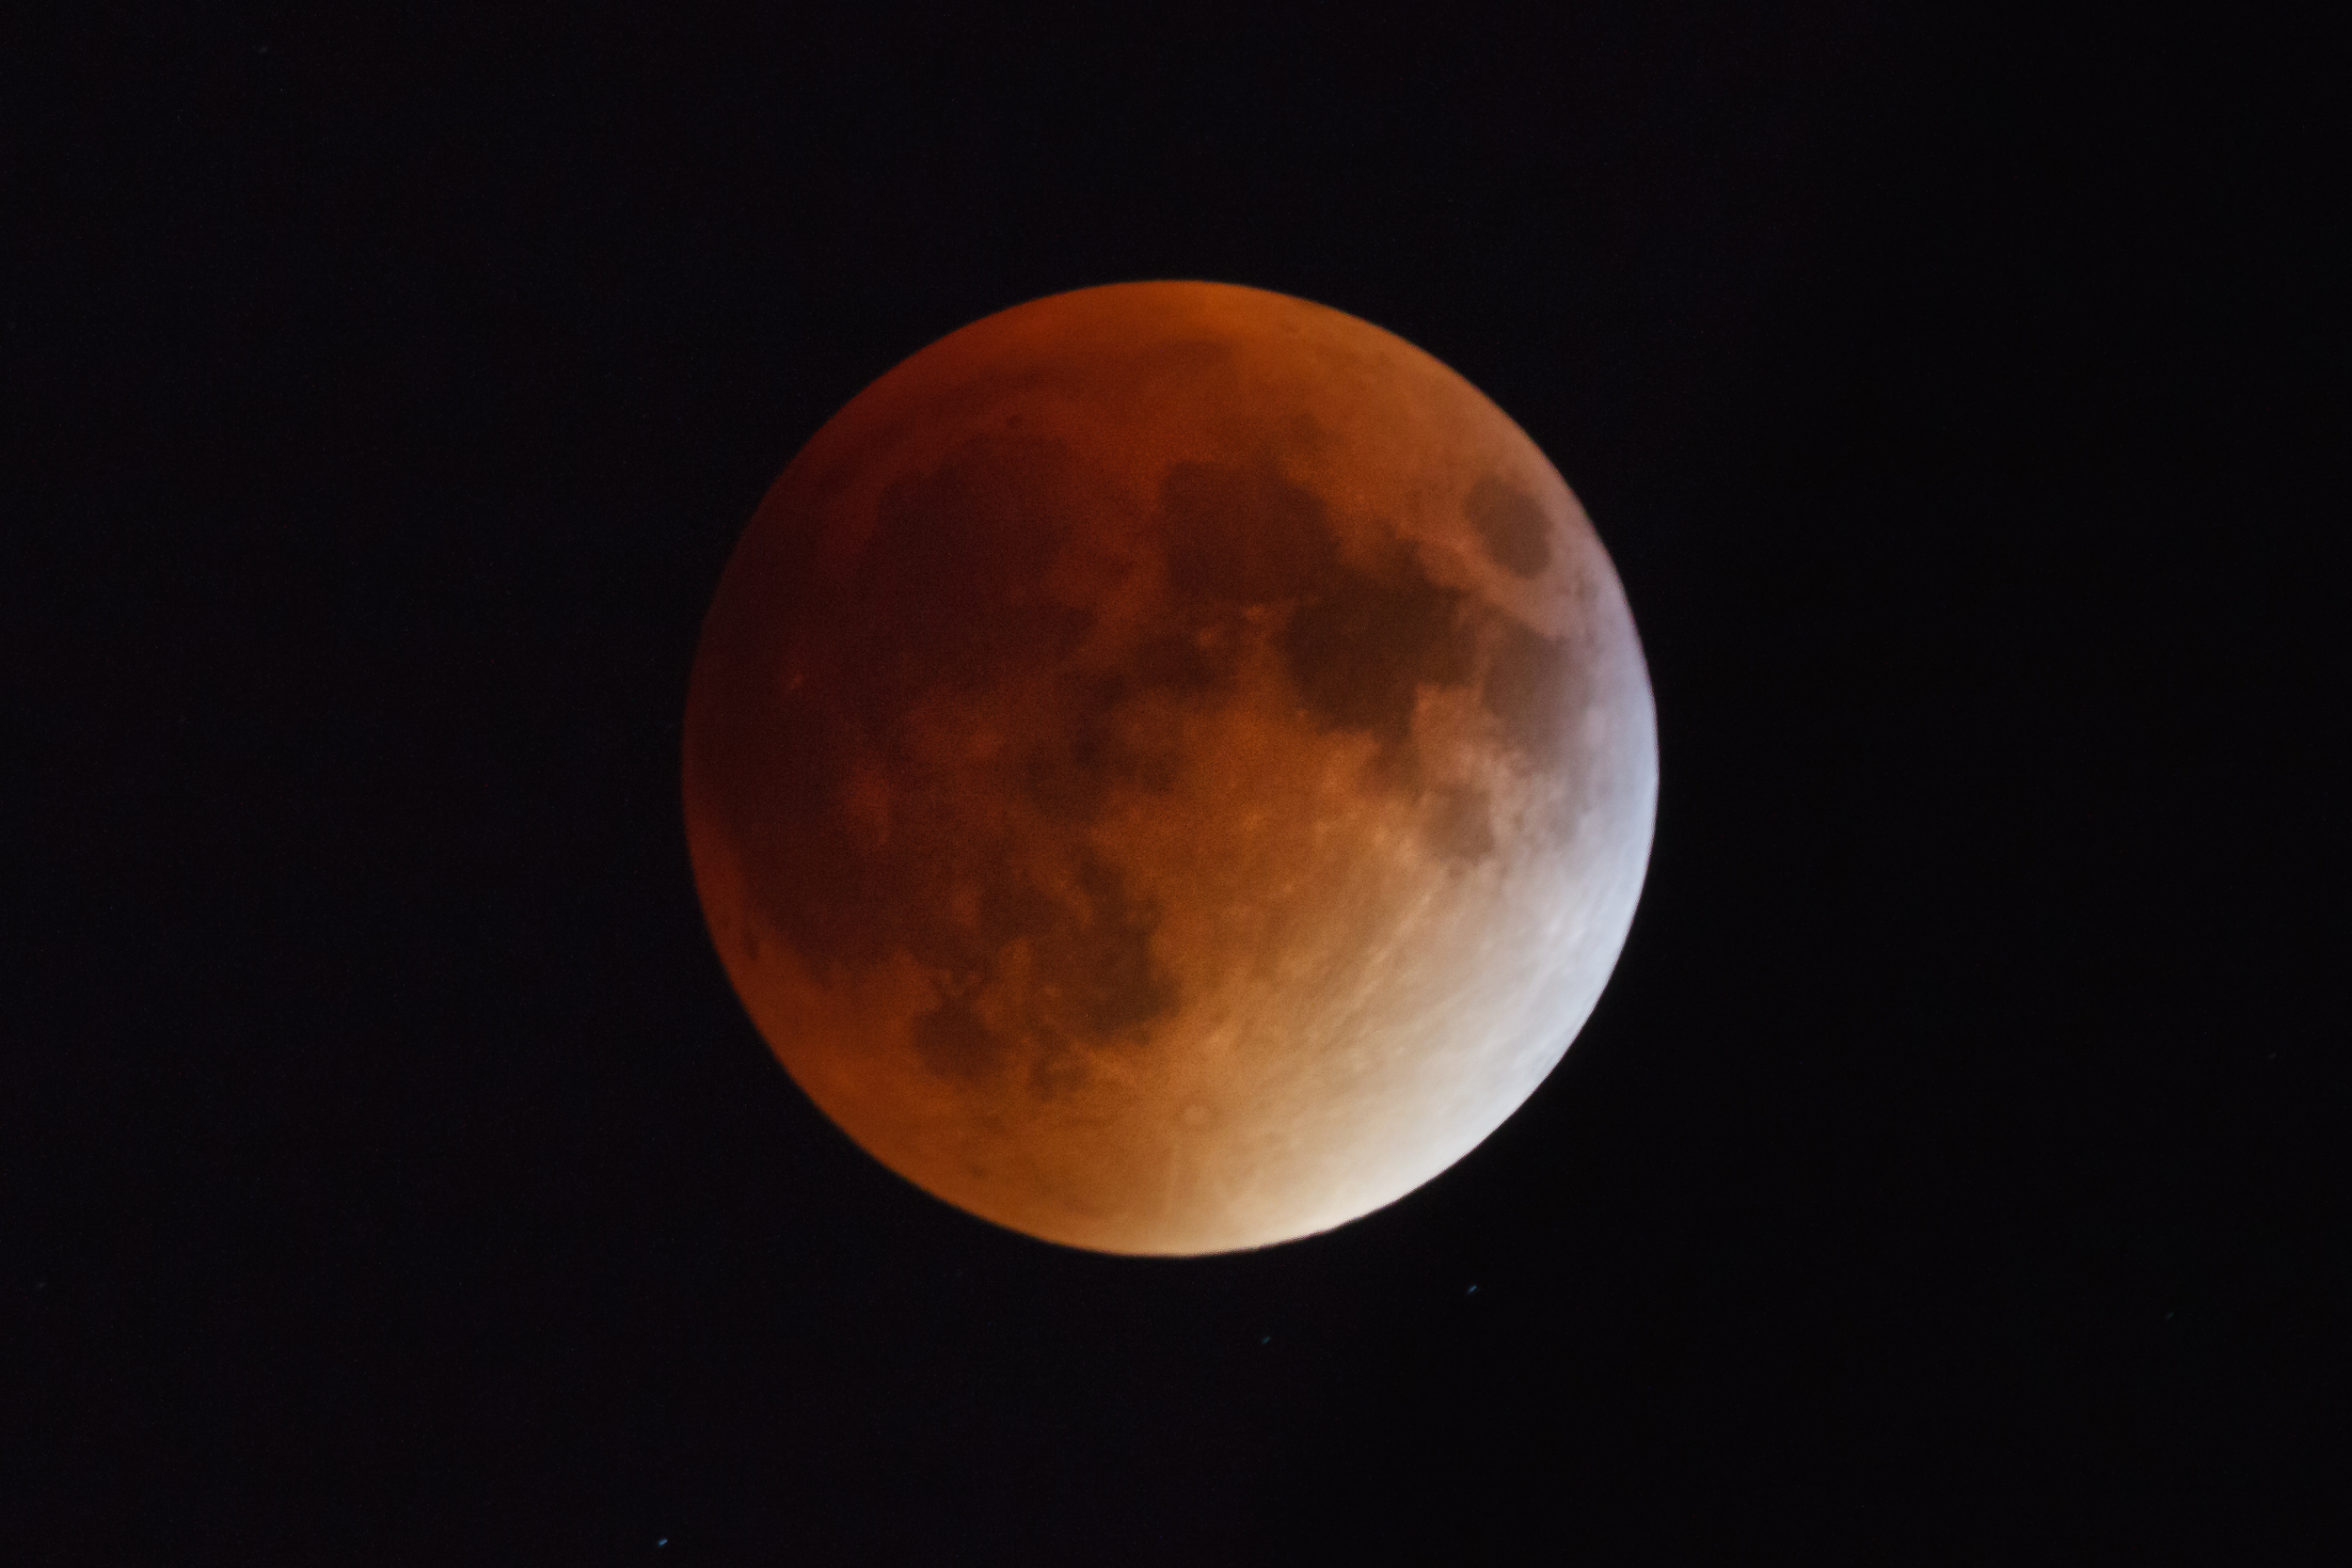 Usually I shoot the moon at ISO 400 and f/11 but with the eclipse I needed to go to ISO 1600 because the moon is darker than usual.  I shot this image on a Canon 7D with the Canon 100-400 mm f/5.6 and a 2x teleconverter.